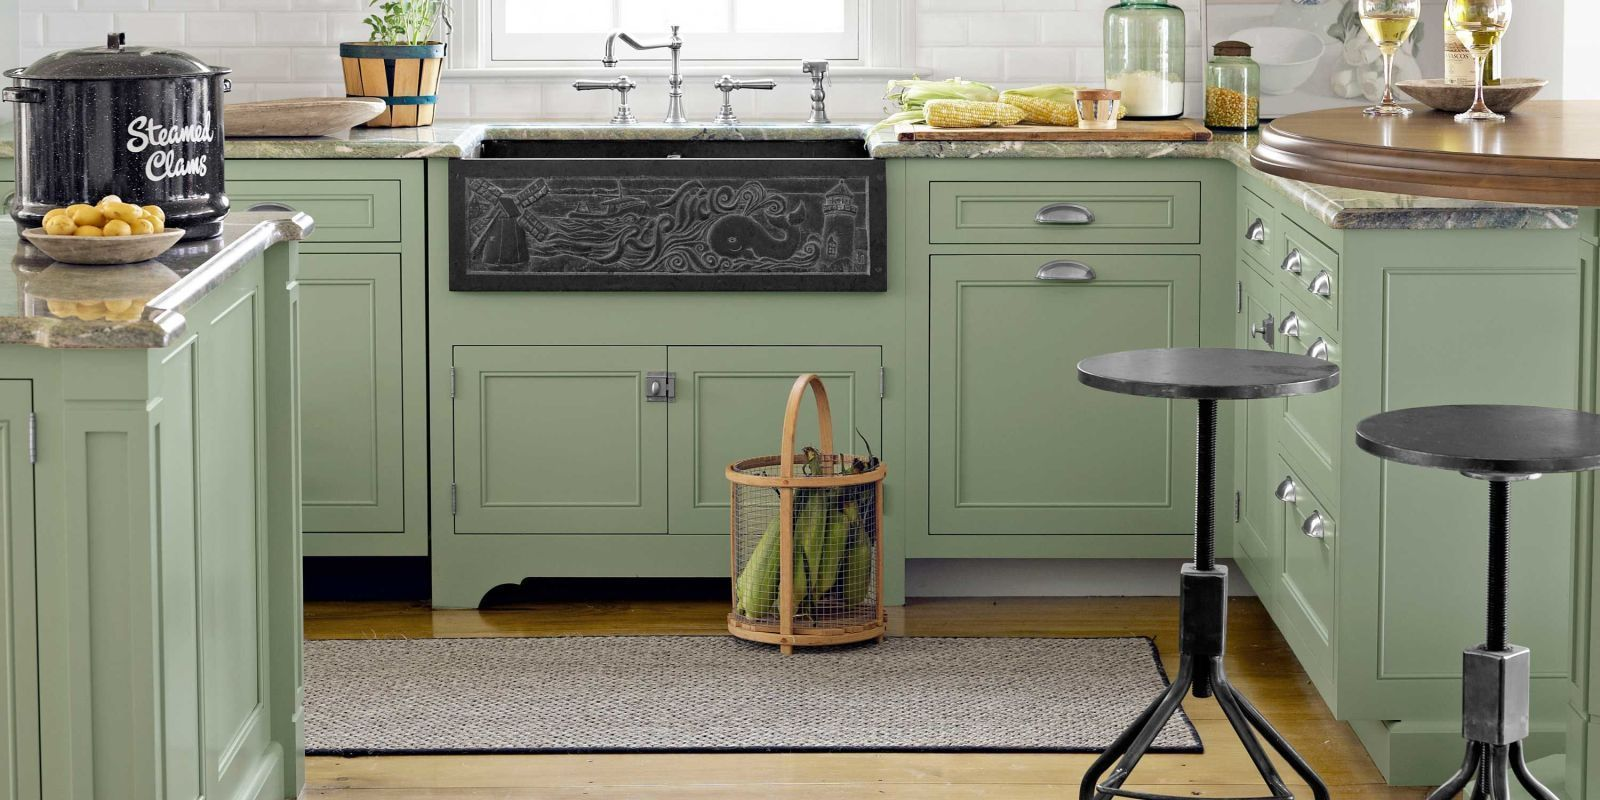 ingenious ideas to steal for your small kitchen small kitchen